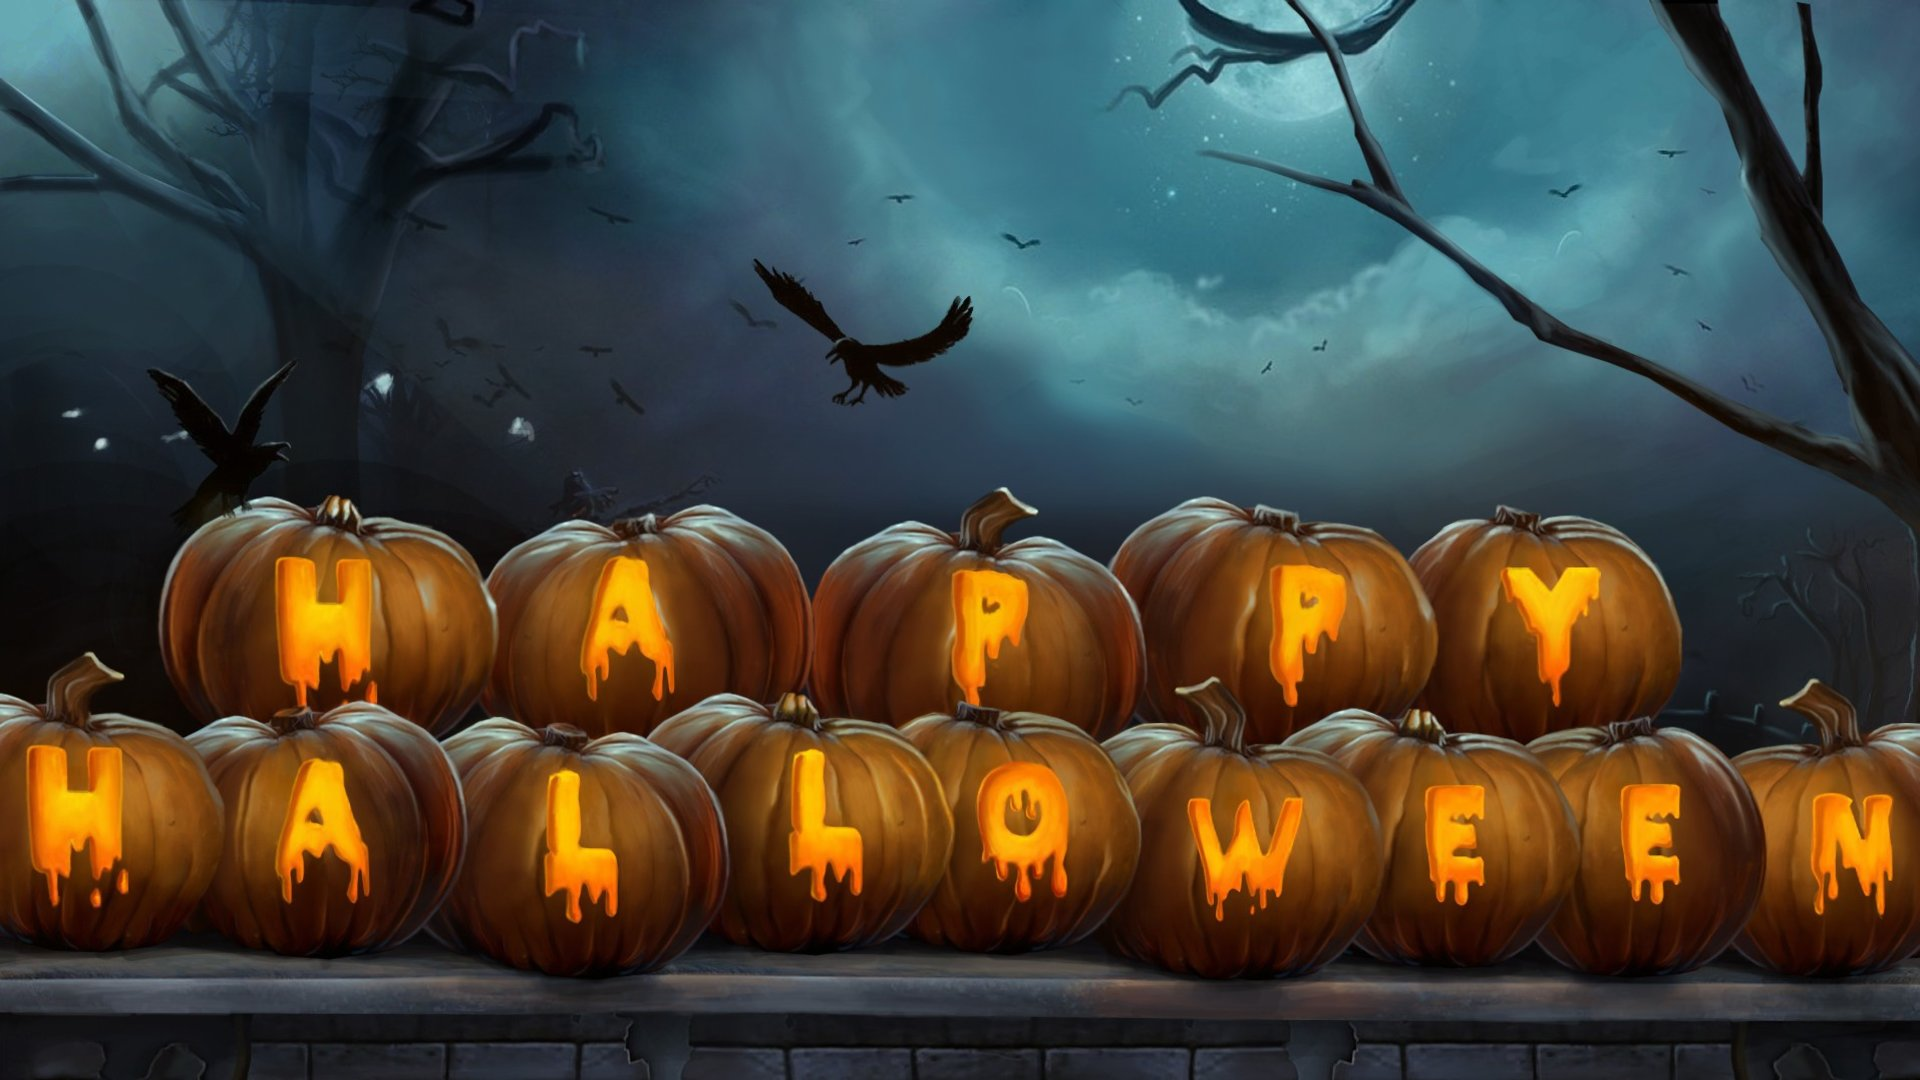 Wallpapers Halloween Fondos De Pantalla